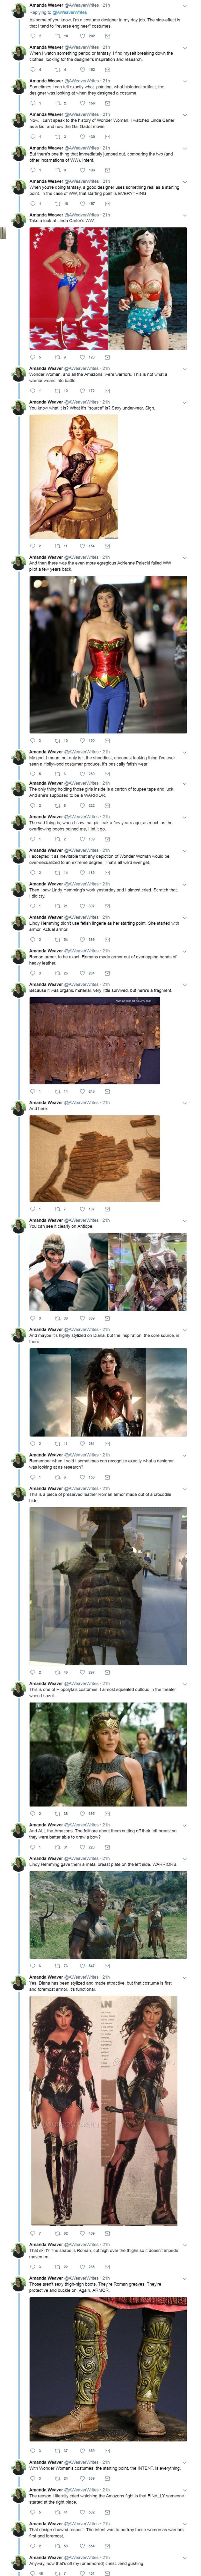 """Breaking Down the Design of the Amazonian Armor in """"Wonder Woman"""""""